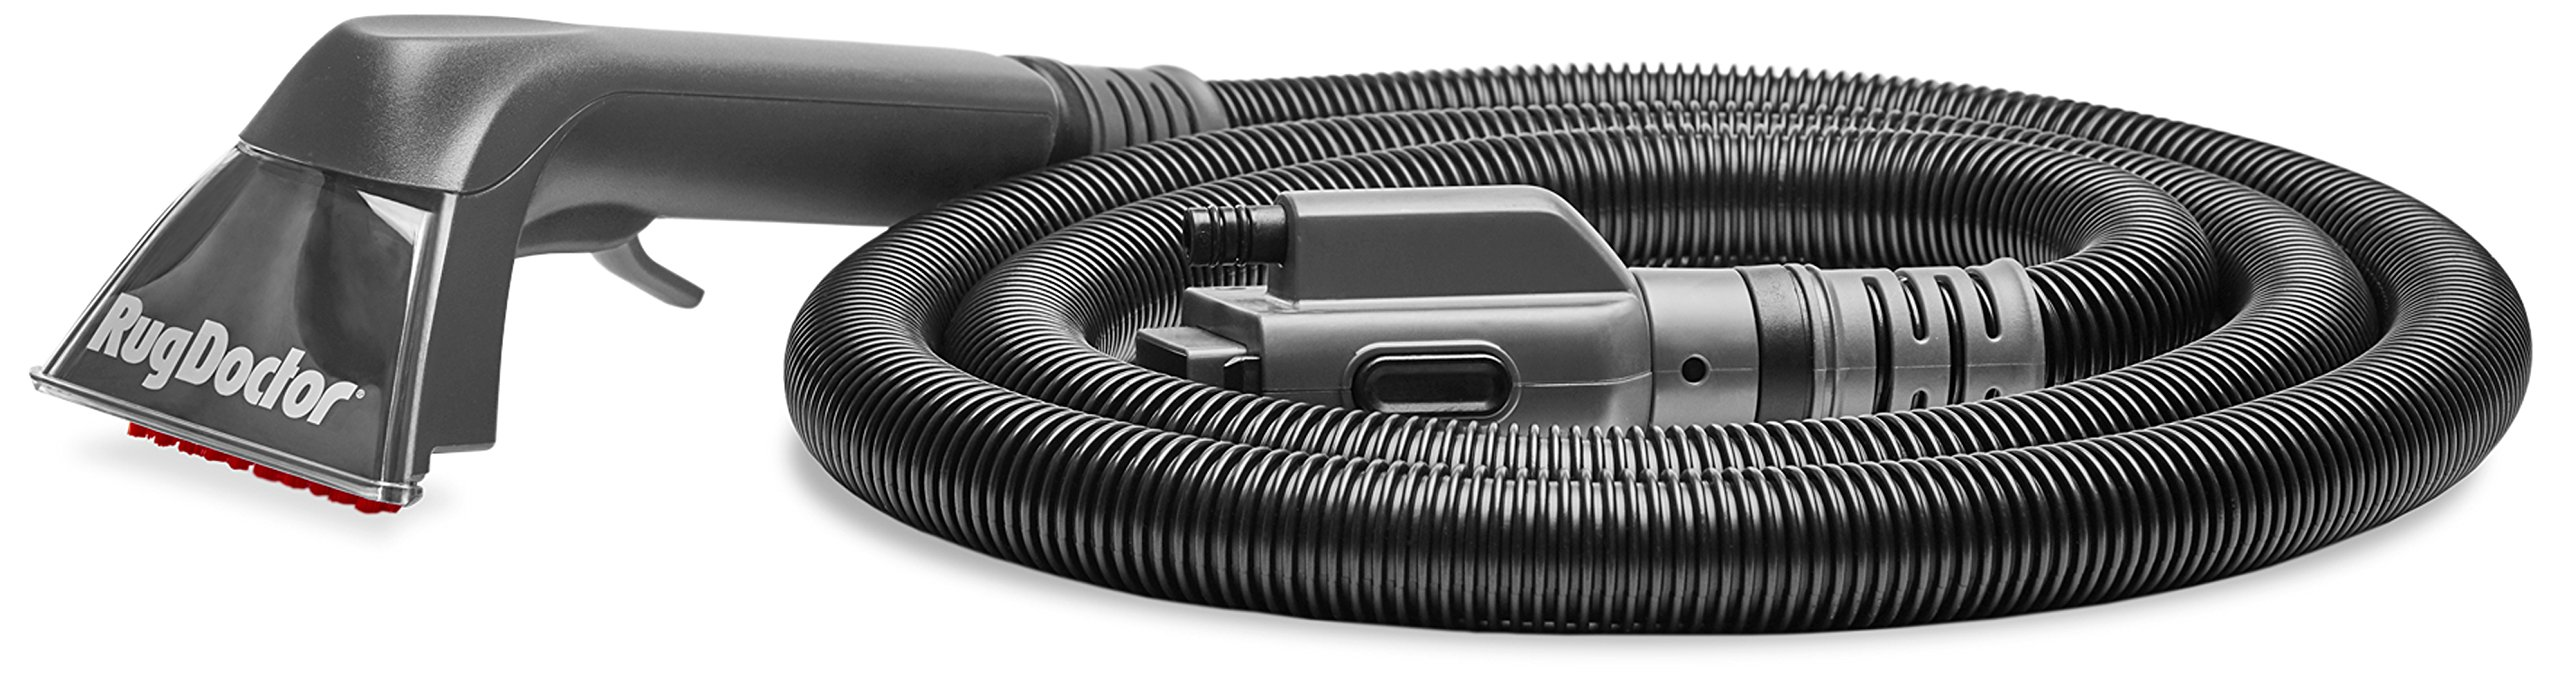 Rug Doctor FlexClean Upholstery Tool; 7.6-Foot Hose with Durable, Ergonomic Handle Attaches to FlexClean Machine; 5-Inch Cleaning Path Powerfully Suctions Deep-Down Dirt, Grime, Stains, Spills, Debris